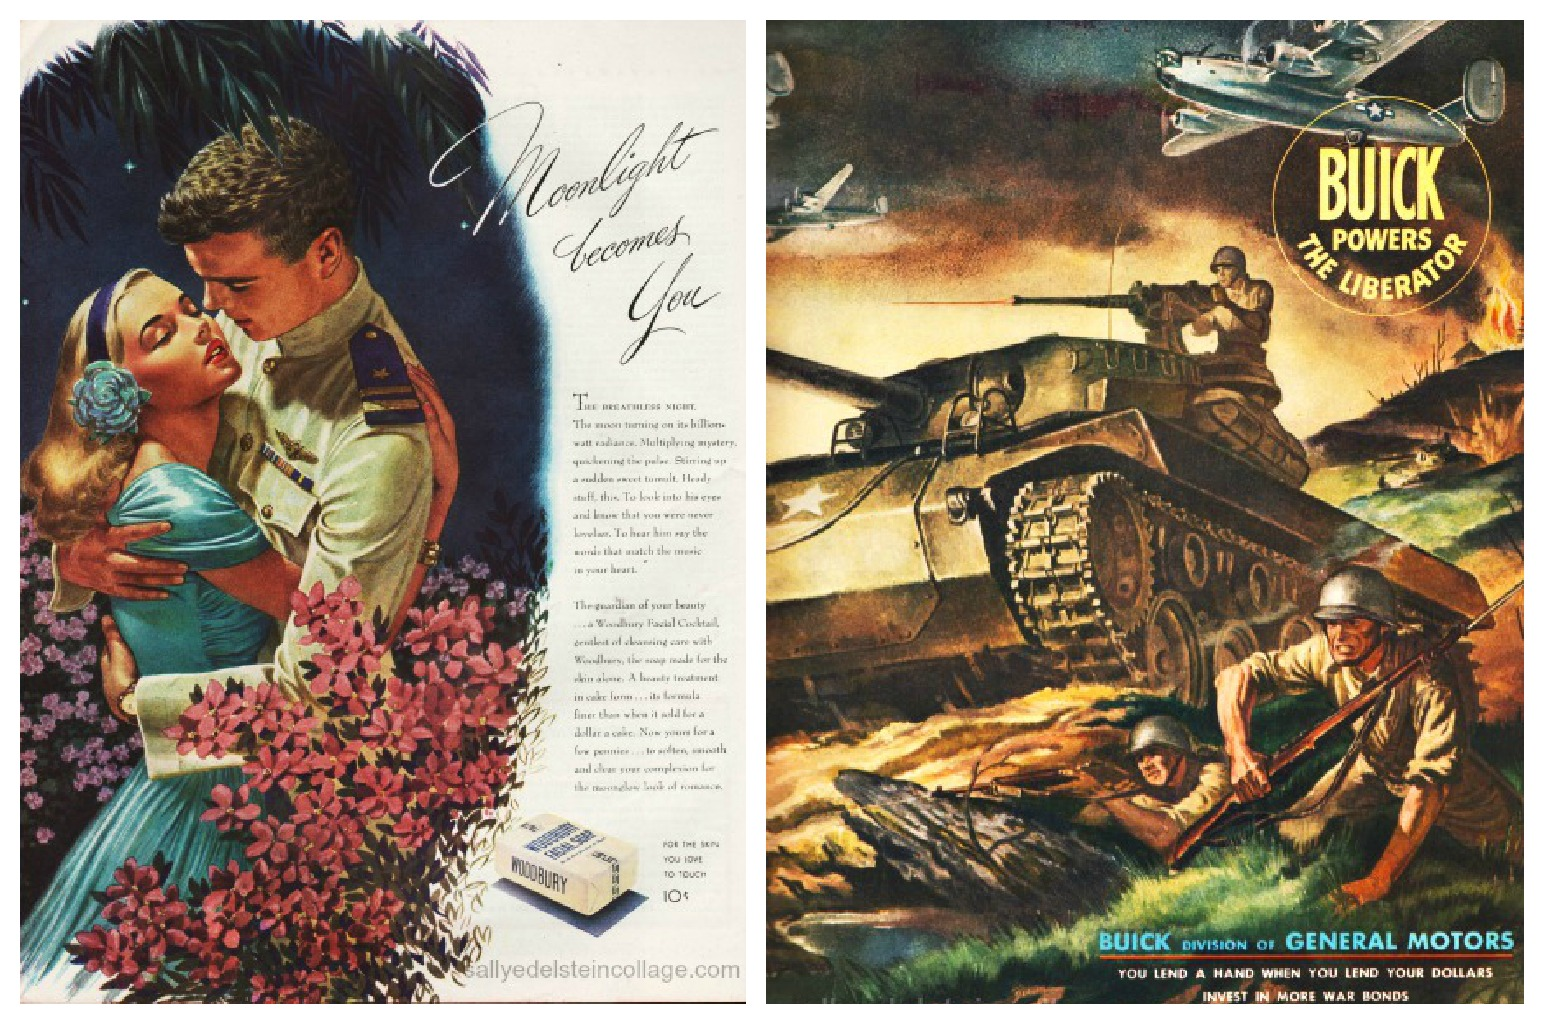 Advertising (L) Woodbury Soap 1944 (R) Buick powers the Liberator 1944